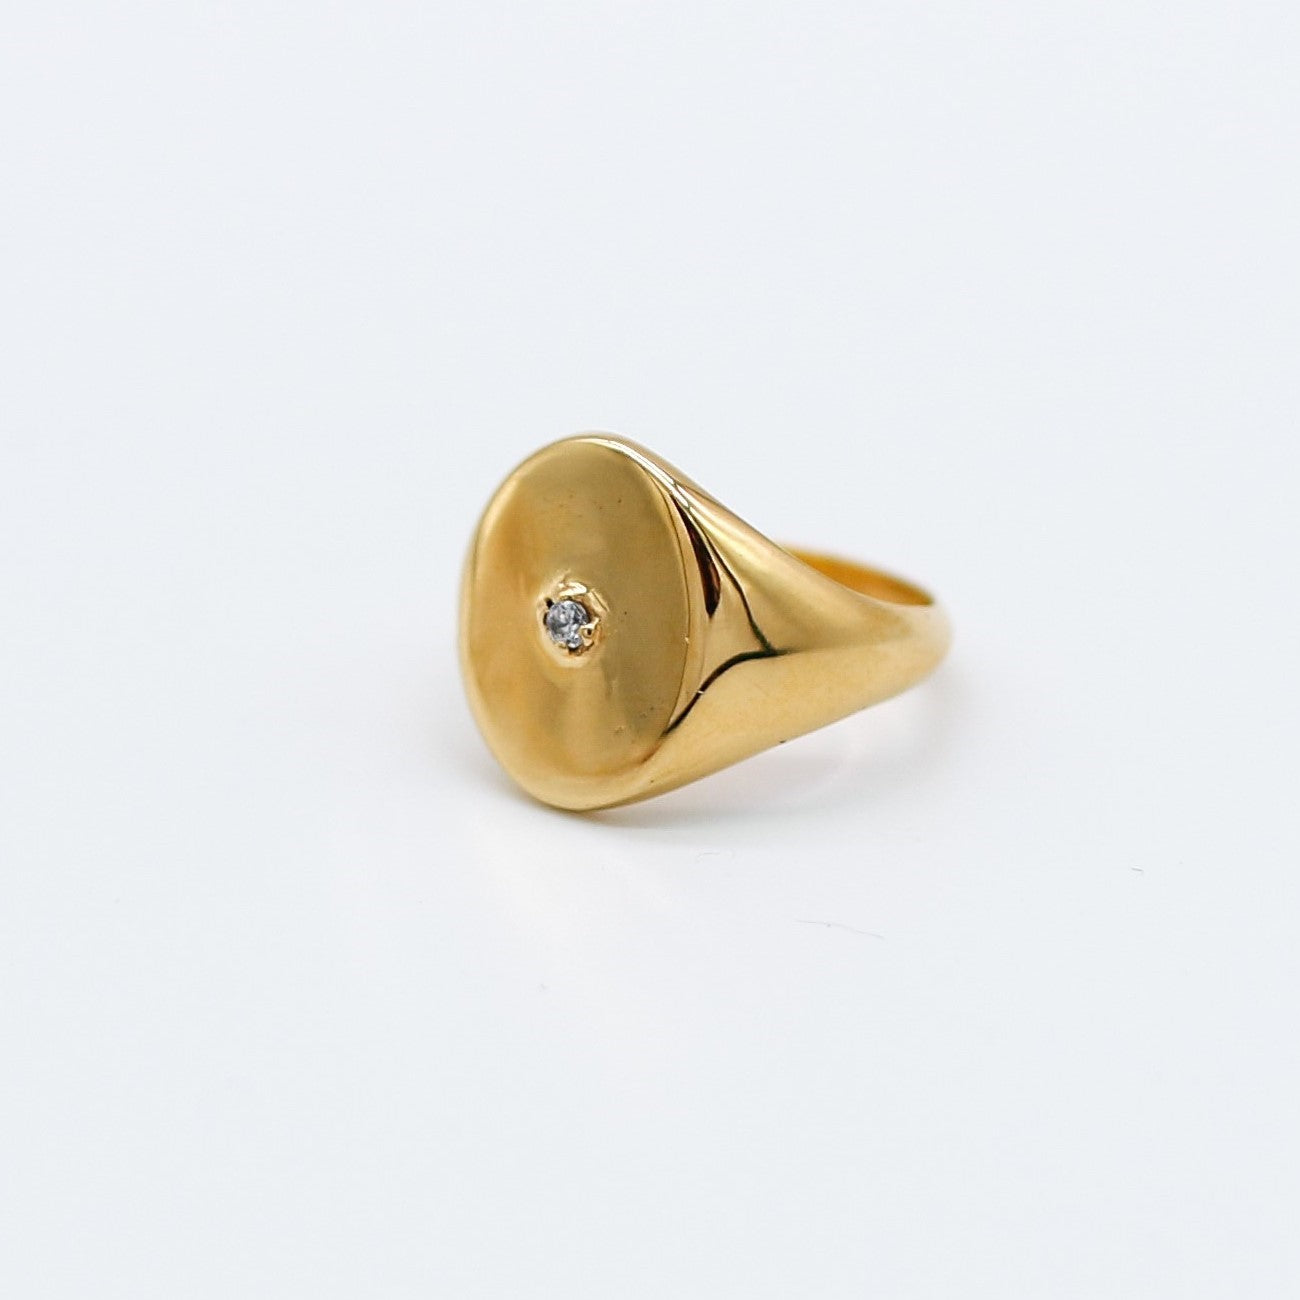 Signet Ring -  Handmade gold plated Katy Valentine - Shop with Sparkle & The Sinner